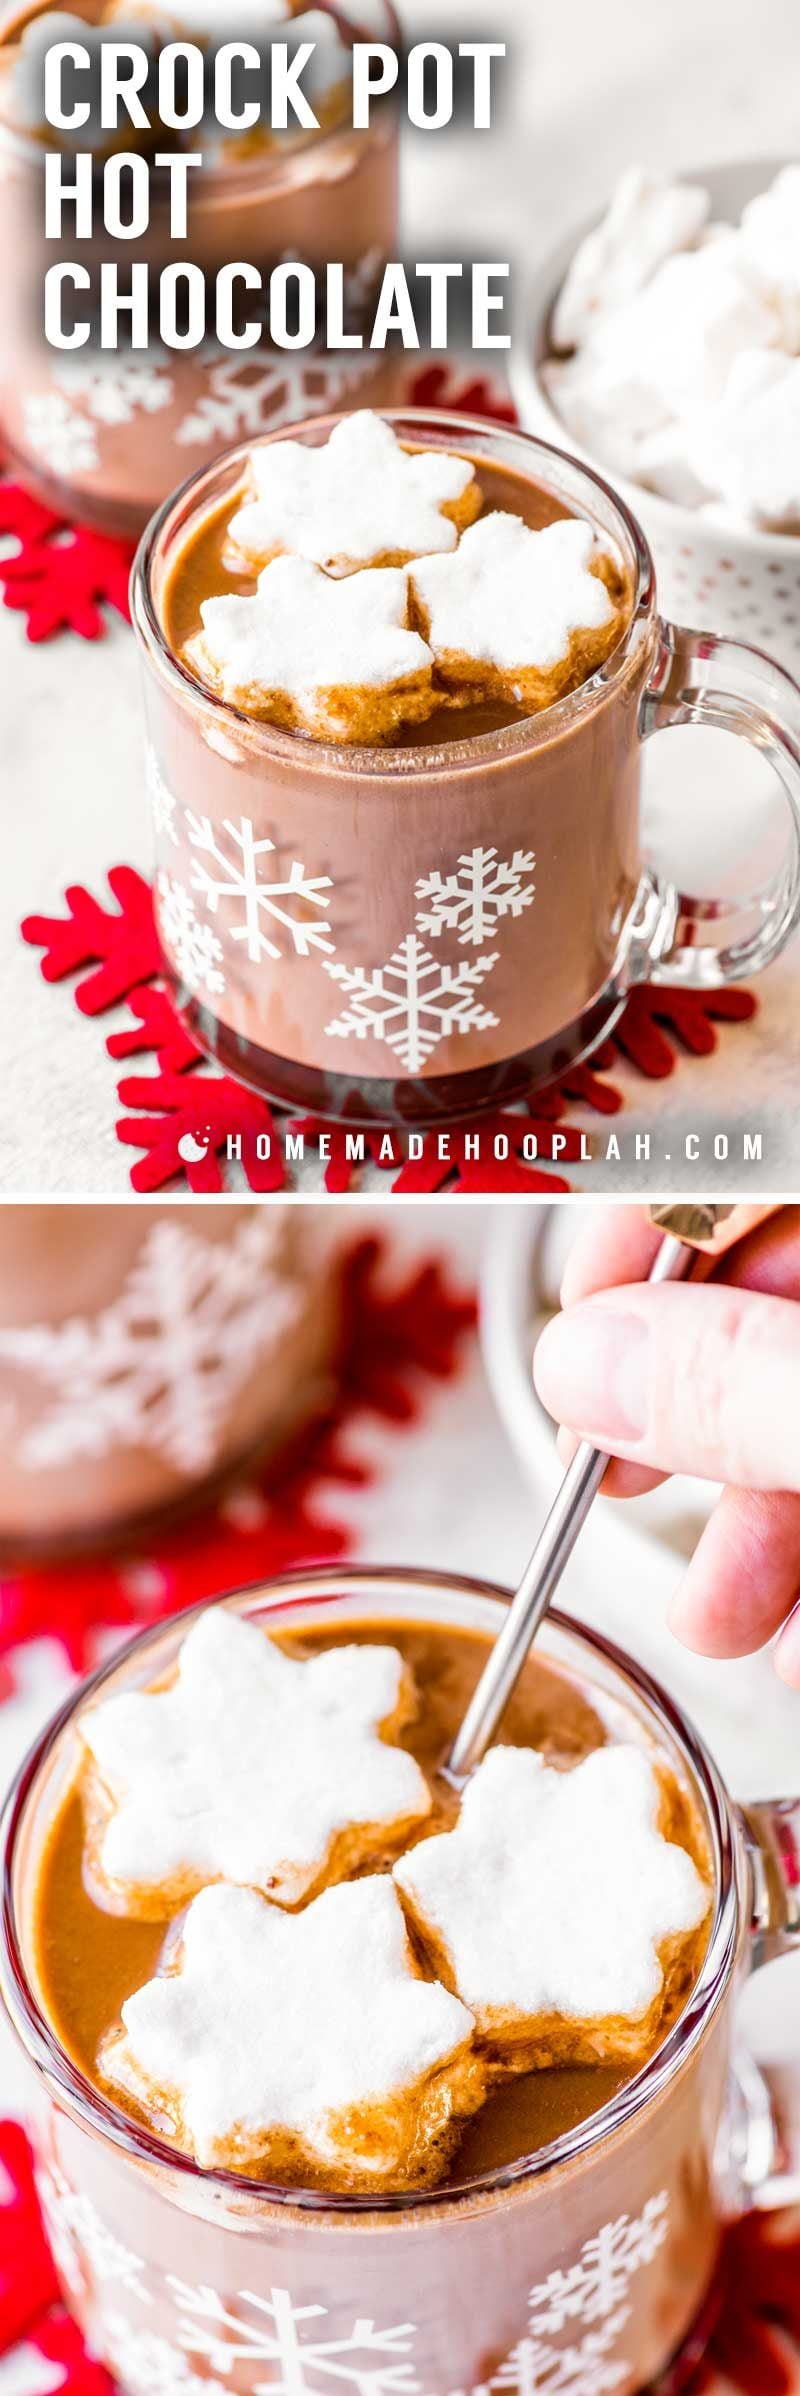 best crock pot hot chocolate recipe